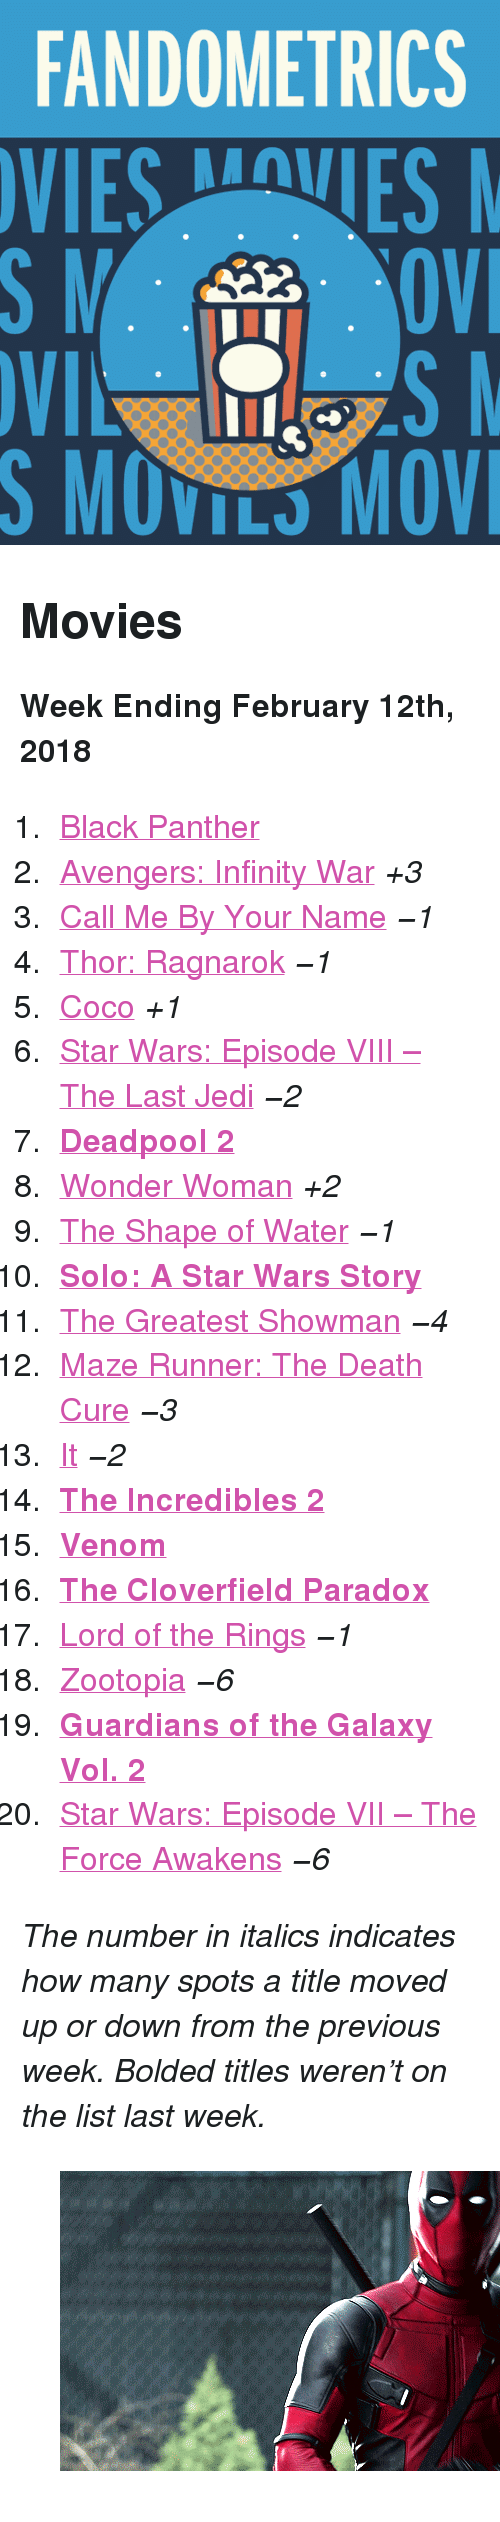 """CoCo, Gif, and Jedi: FANDOMETRICS  SMOVILS MOV <h2>Movies</h2><p><b>Week Ending February 12th, 2018</b></p><ol><li><a href=""""http://www.tumblr.com/search/black%20panther"""">Black Panther</a></li>  <li><a href=""""http://www.tumblr.com/search/infinity%20war"""">Avengers: Infinity War</a><i>+3</i></li>  <li><a href=""""http://www.tumblr.com/search/call%20me%20by%20your%20name"""">Call Me By Your Name</a><i><i>−1</i></i></li>  <li><a href=""""http://www.tumblr.com/search/thor%20ragnarok"""">Thor: Ragnarok</a><i><i>−1</i></i></li>  <li><a href=""""http://www.tumblr.com/search/coco"""">Coco</a><i>+1</i></li>  <li><a href=""""http://www.tumblr.com/search/the%20last%20jedi"""">Star Wars: Episode VIII – The Last Jedi</a><i><i>−2</i></i></li>  <li><a href=""""http://www.tumblr.com/search/deadpool""""><b>Deadpool 2</b></a></li>  <li><a href=""""http://www.tumblr.com/search/wonder%20woman"""">Wonder Woman</a><i>+2</i></li>  <li><a href=""""http://www.tumblr.com/search/the%20shape%20of%20water"""">The Shape of Water</a><i><i>−1</i></i></li>  <li><a href=""""http://www.tumblr.com/search/solo:%20a%20star%20wars%20story""""><b>Solo: A Star Wars Story</b></a></li>  <li><a href=""""http://www.tumblr.com/search/the%20greatest%20showman"""">The Greatest Showman</a><i><i>−4</i></i></li>  <li><a href=""""http://www.tumblr.com/search/the%20maze%20runner"""">Maze Runner: The Death Cure</a><i><i>−3</i></i></li>  <li><a href=""""http://www.tumblr.com/search/it%202017"""">It</a><i><i>−2</i></i></li>  <li><a href=""""http://www.tumblr.com/search/the%20incredibles""""><b>The Incredibles 2</b></a></li>  <li><a href=""""http://www.tumblr.com/search/venom""""><b>Venom</b></a></li>  <li><a href=""""http://www.tumblr.com/search/the%20cloverfield%20paradox""""><b>The Cloverfield Paradox</b></a></li>  <li><a href=""""http://www.tumblr.com/search/lotr"""">Lord of the Rings</a><i><i>−1</i></i></li>  <li><a href=""""http://www.tumblr.com/search/zootopia"""">Zootopia</a><i><i>−6</i></i></li>  <li><a href=""""http://www.tumblr.com/search/guardians%20of%20the%20galaxy""""><b>Guardians of the Galaxy Vol. 2</b></a></"""